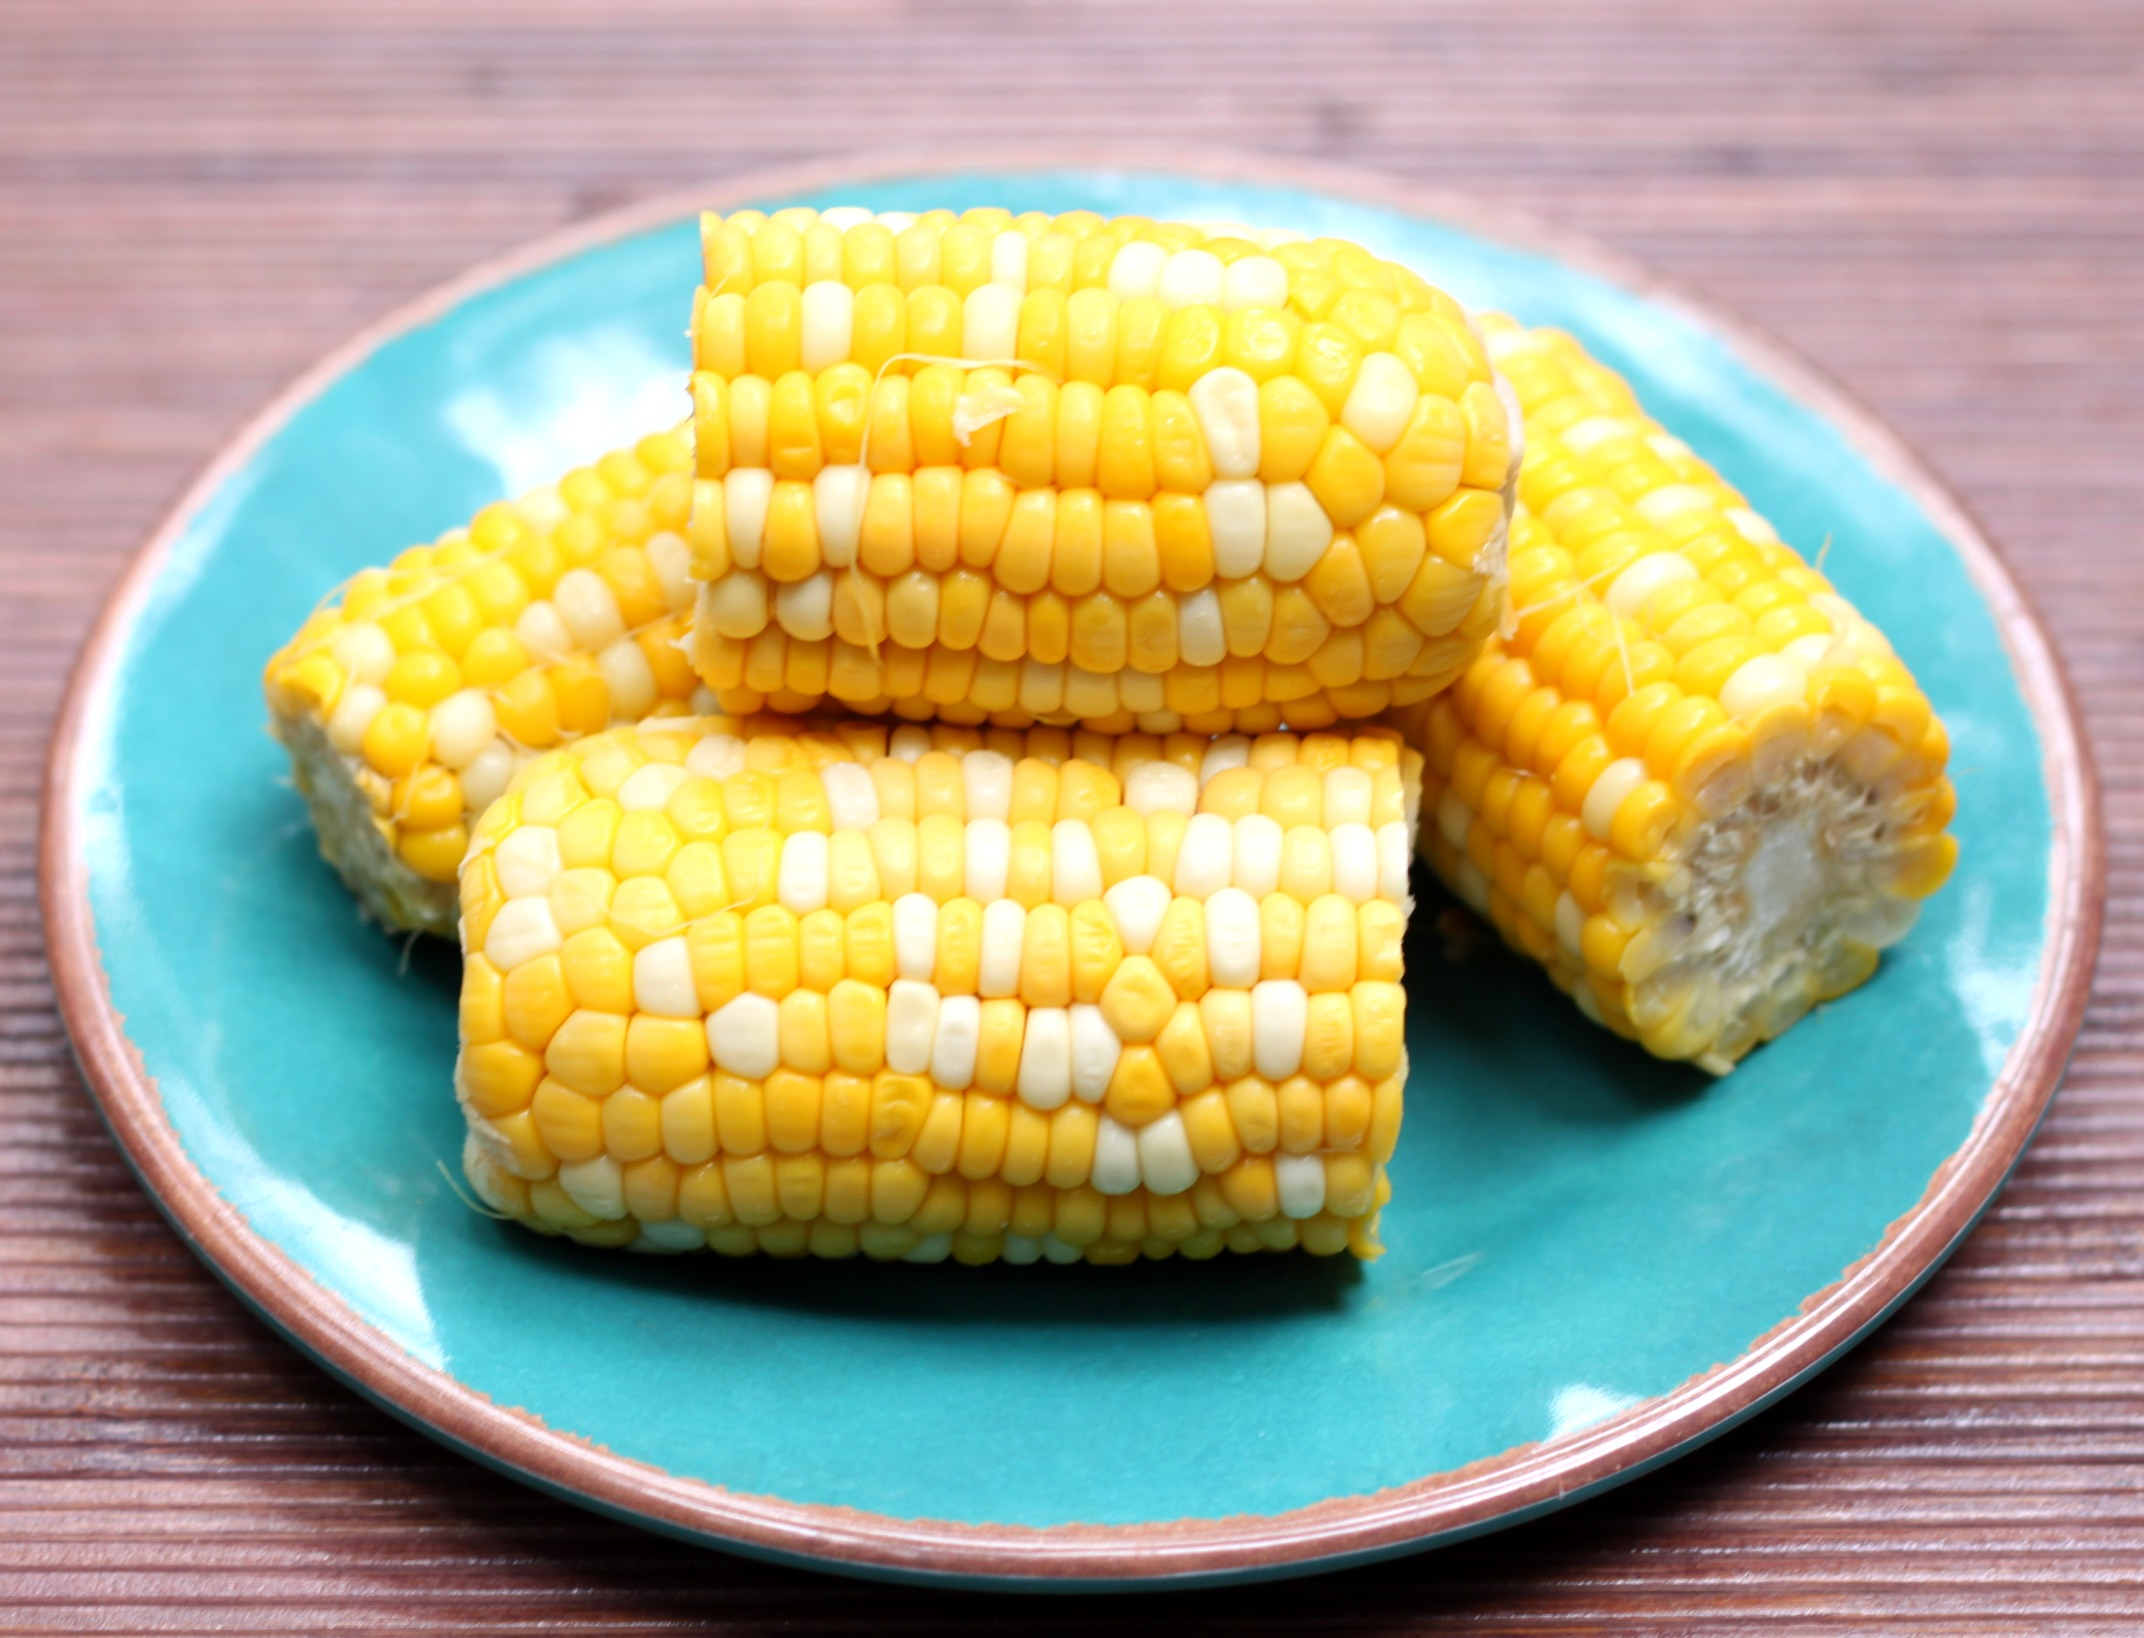 Slow-cooker-corn-on-the-cob